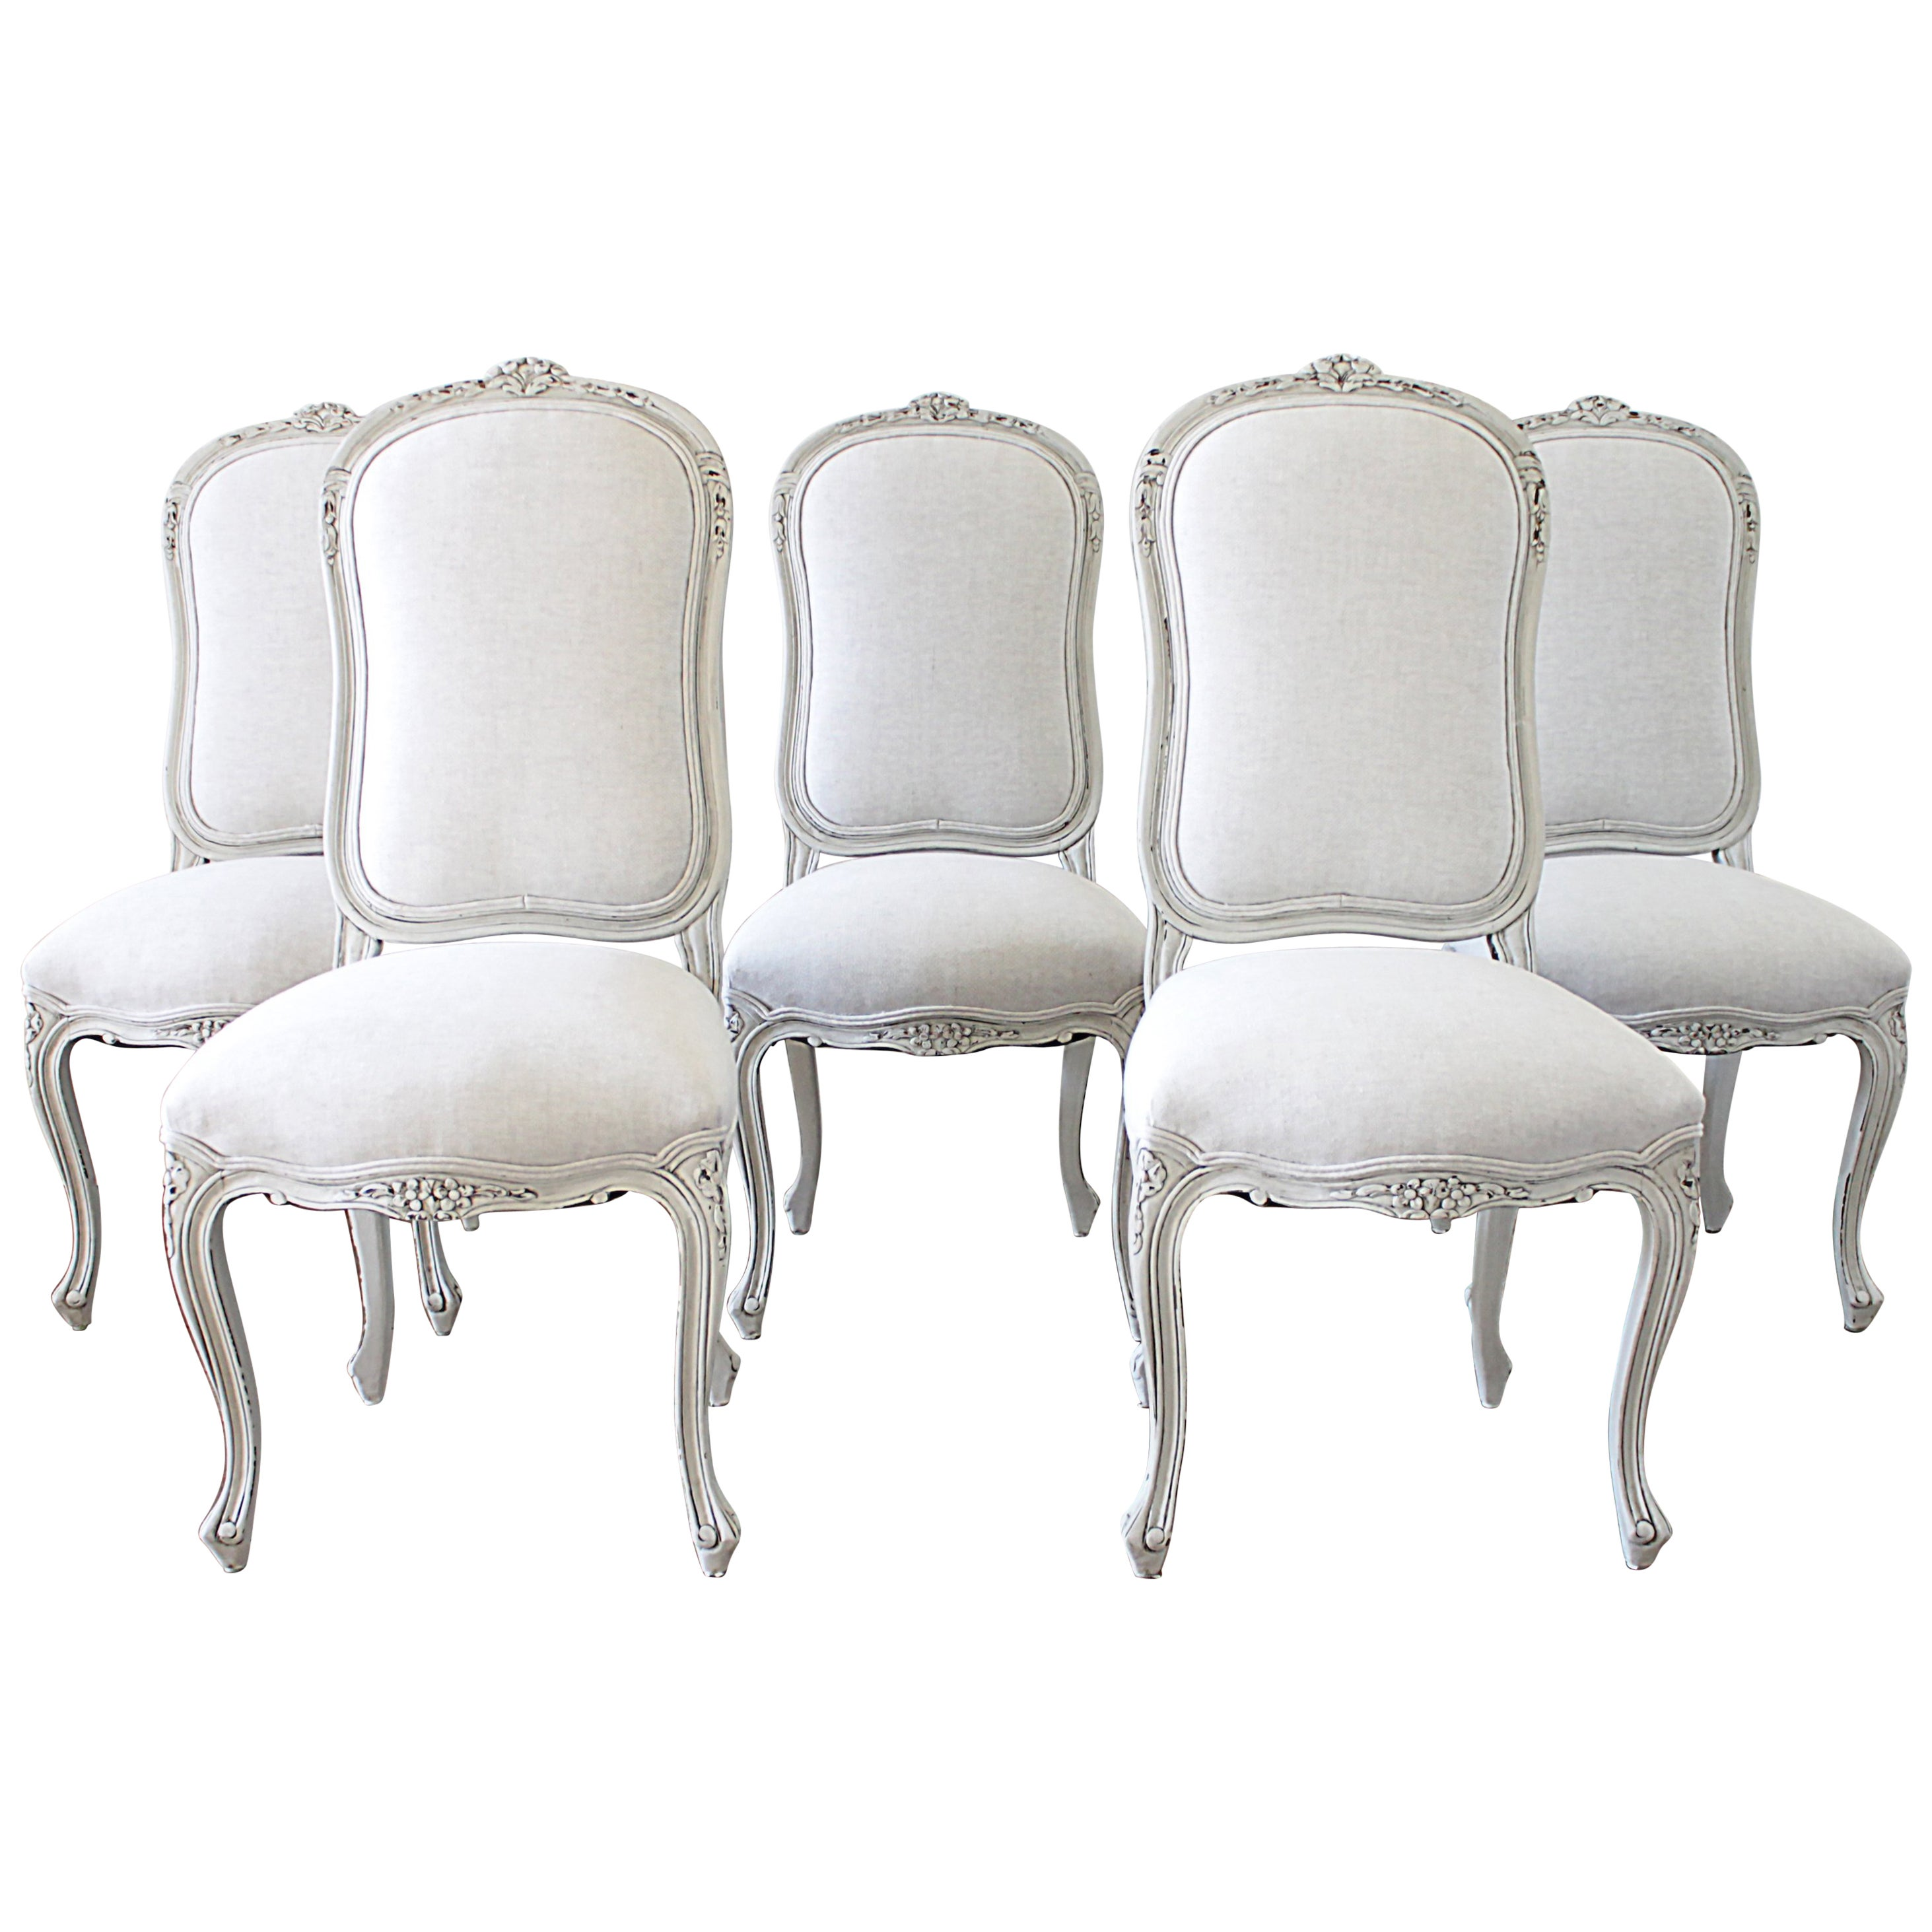 White Dining Room Chair Set Of 5 Painted And Upholstered Dining Room Chairs In Belgian Linen